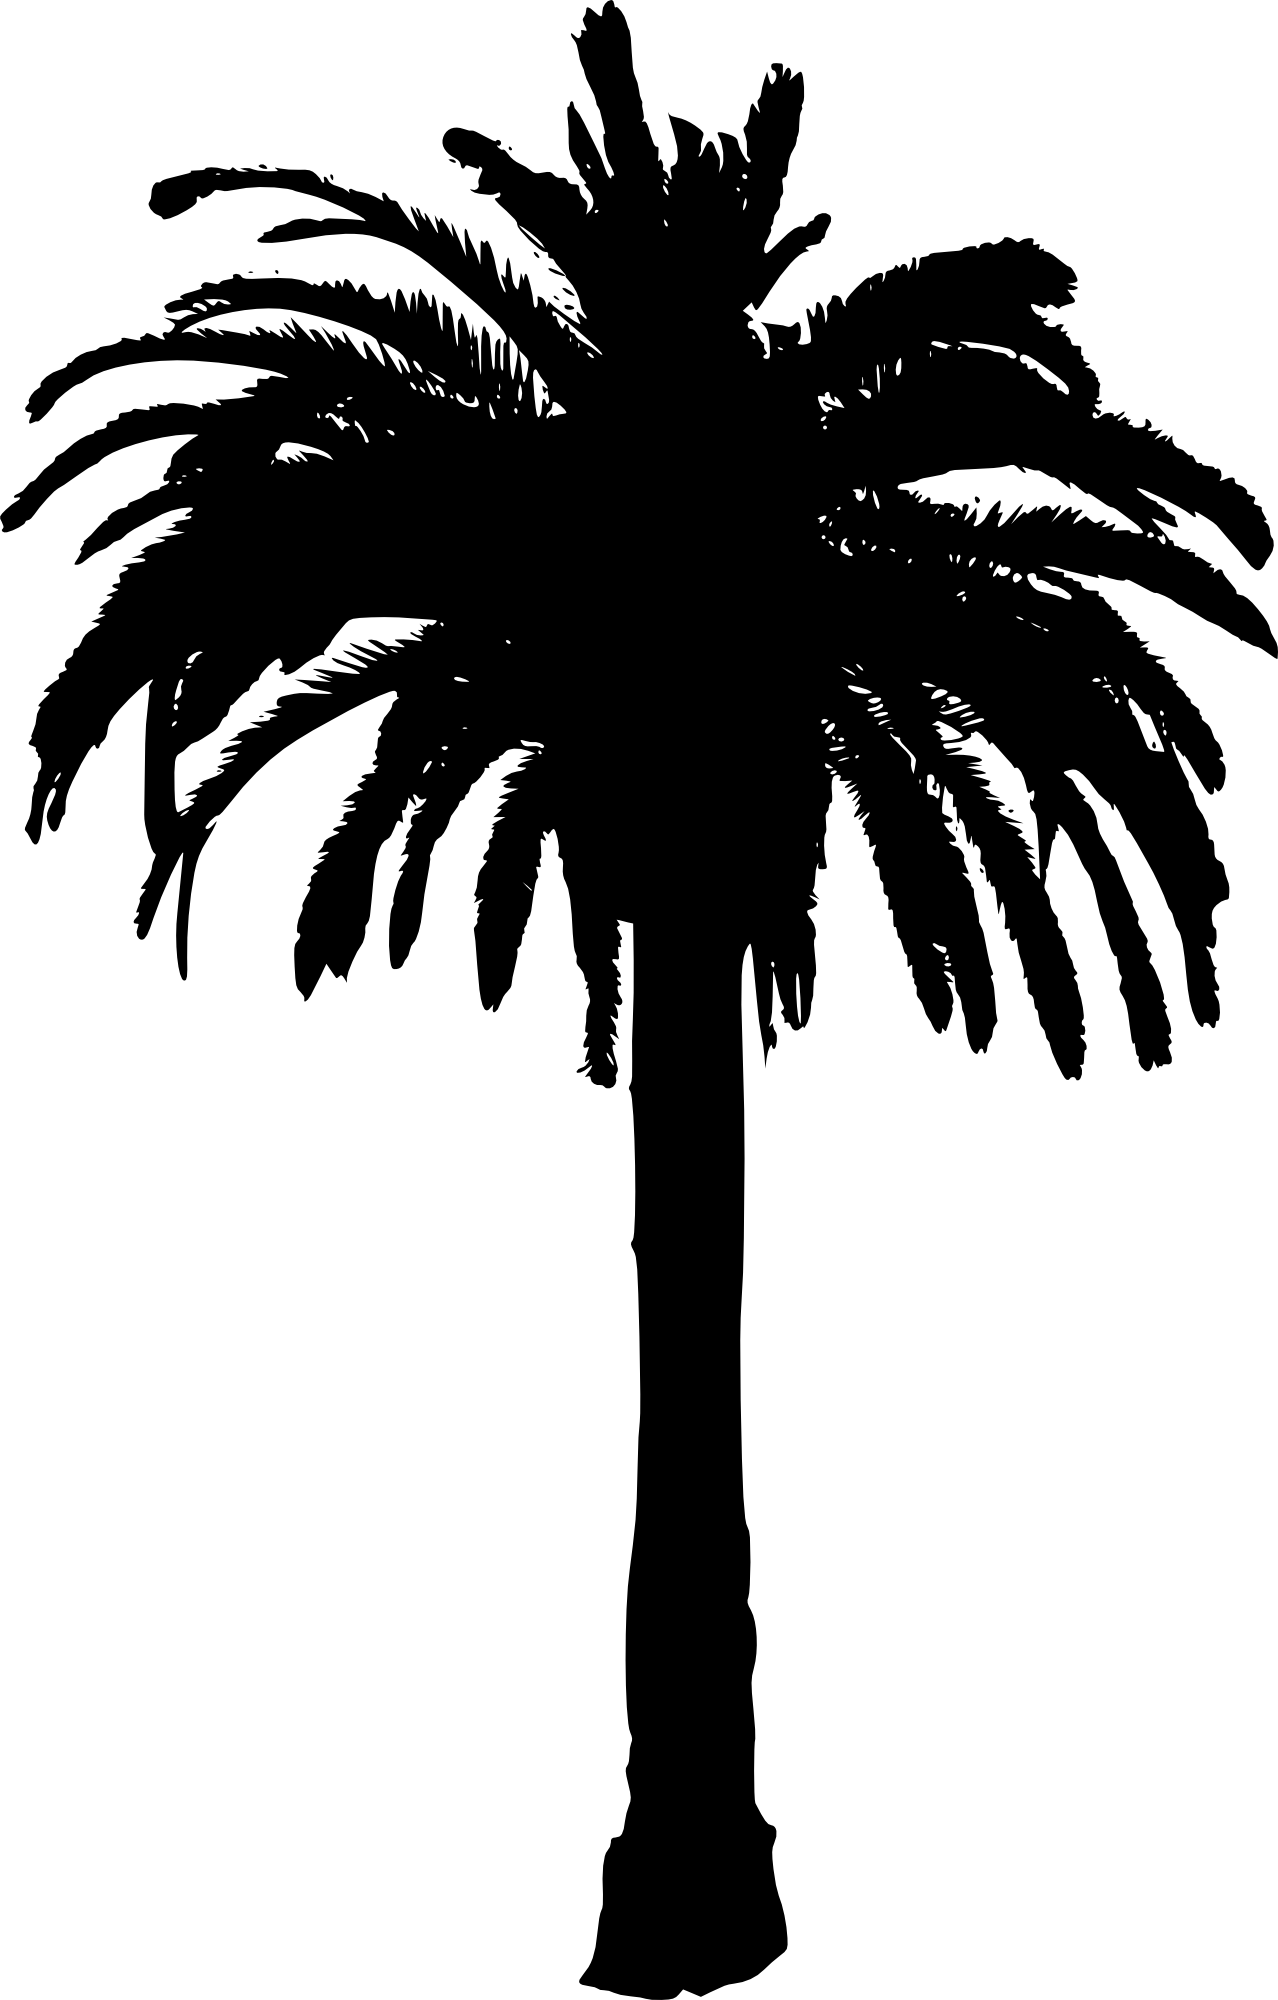 Palmetto Tree Silhouette